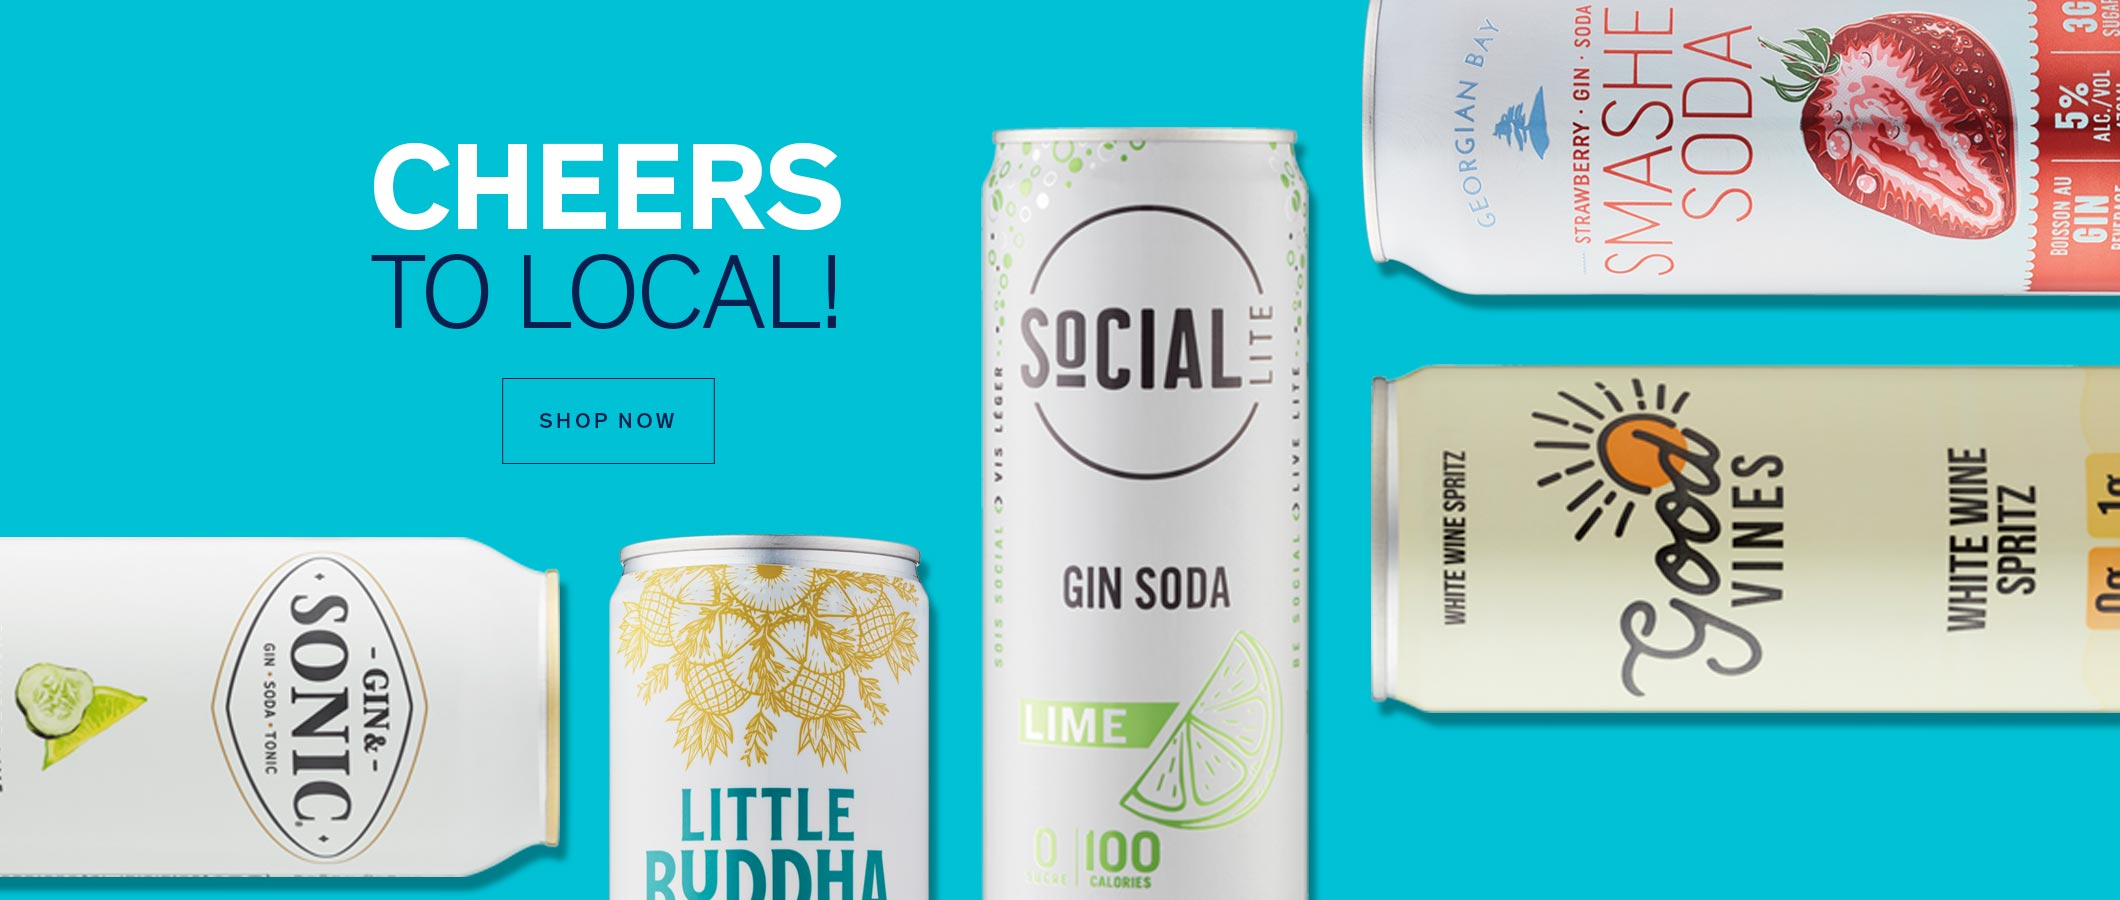 Cheers to Local!